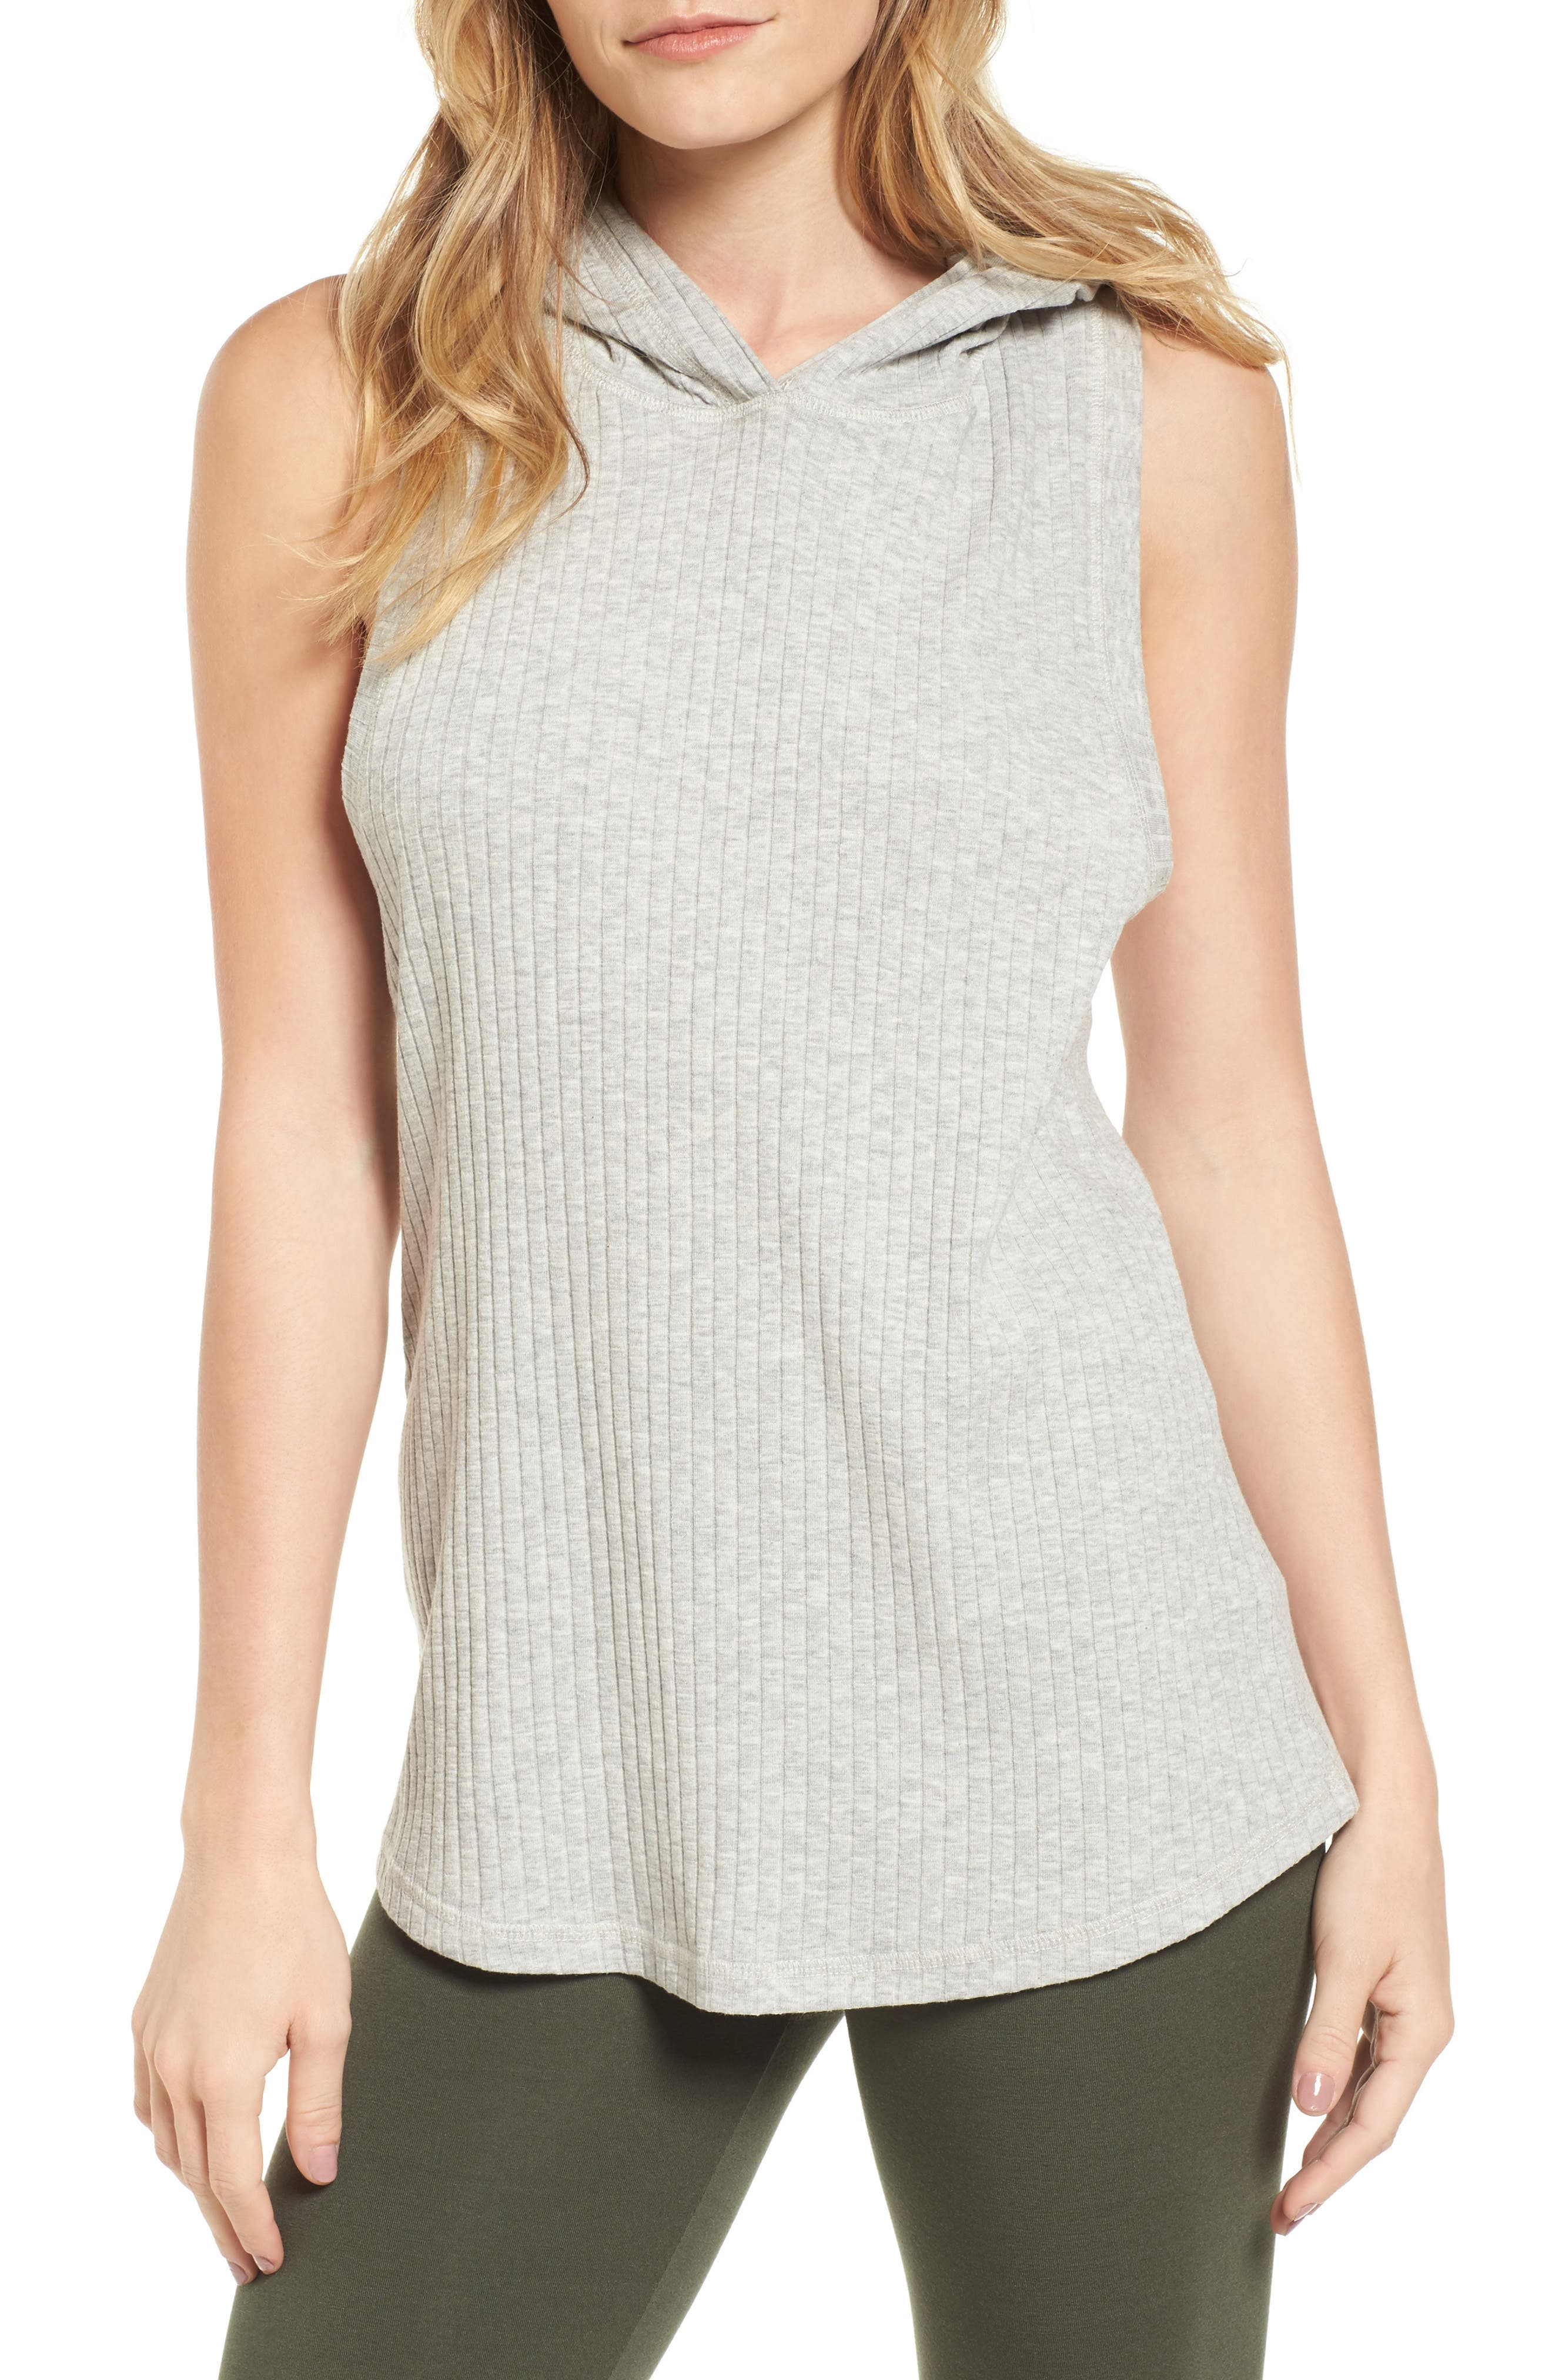 Alternate Image 1 Selected - IVY PARK® Hooded Rib Knit Tank